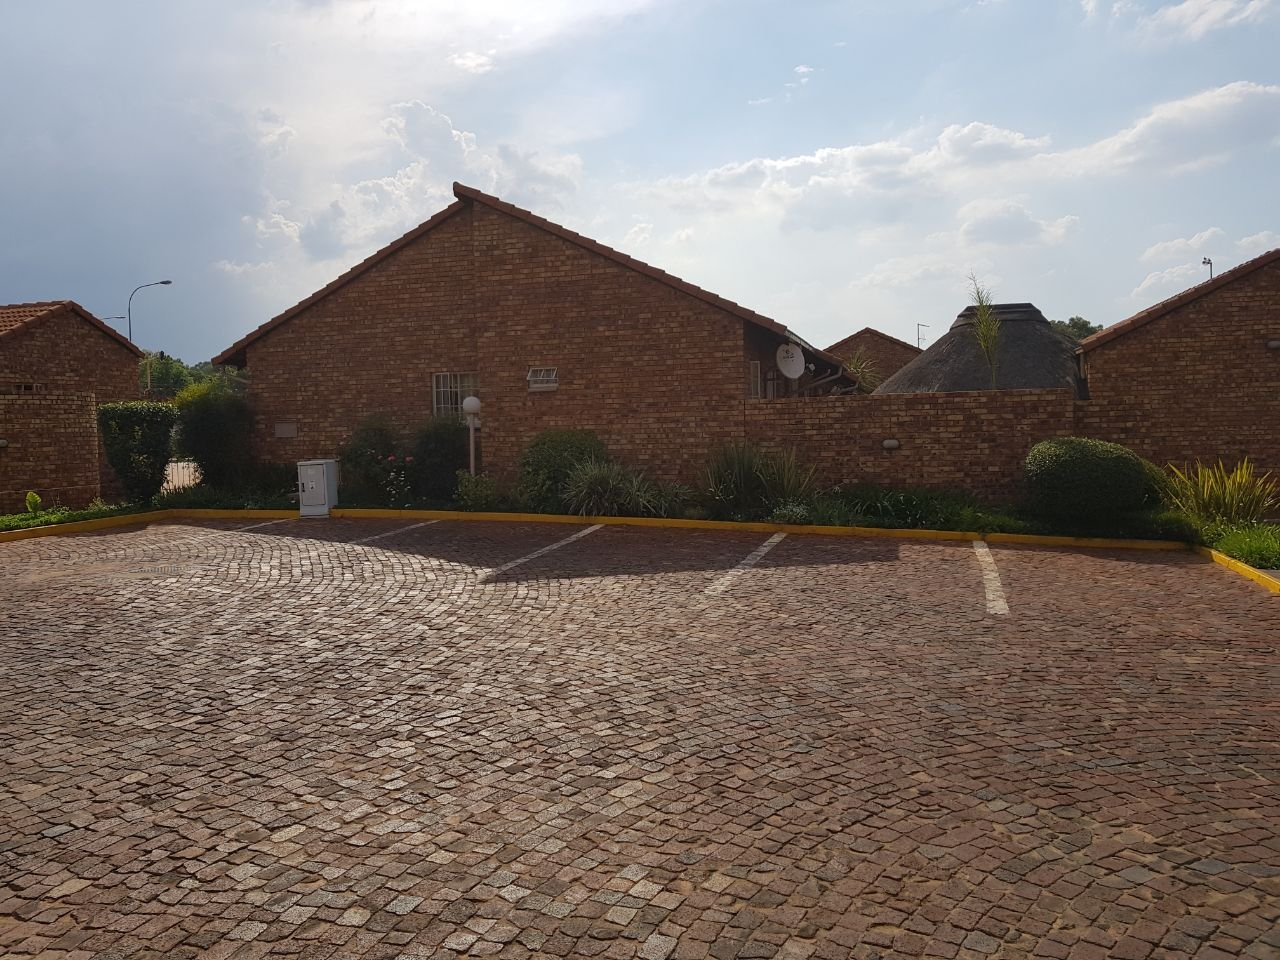 Townhouse for Sale in the ❤️ of Centurion - Zwartkop